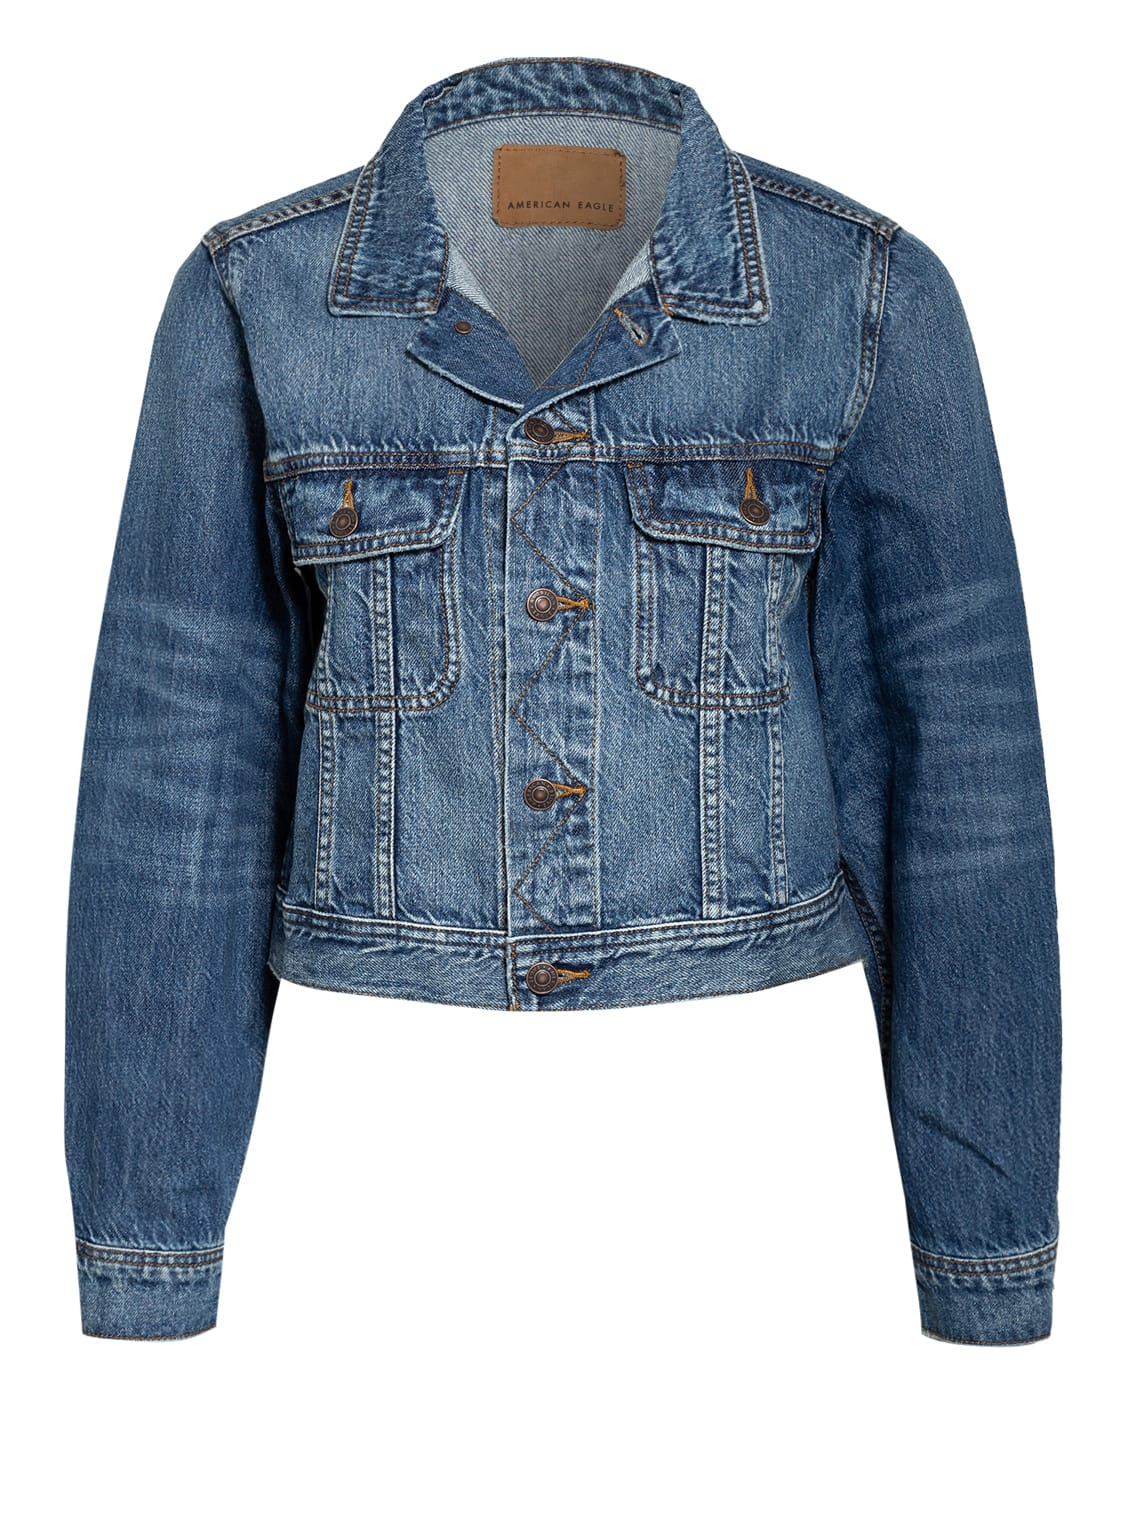 Image of American Eagle Cropped-Jeansjacke weiss